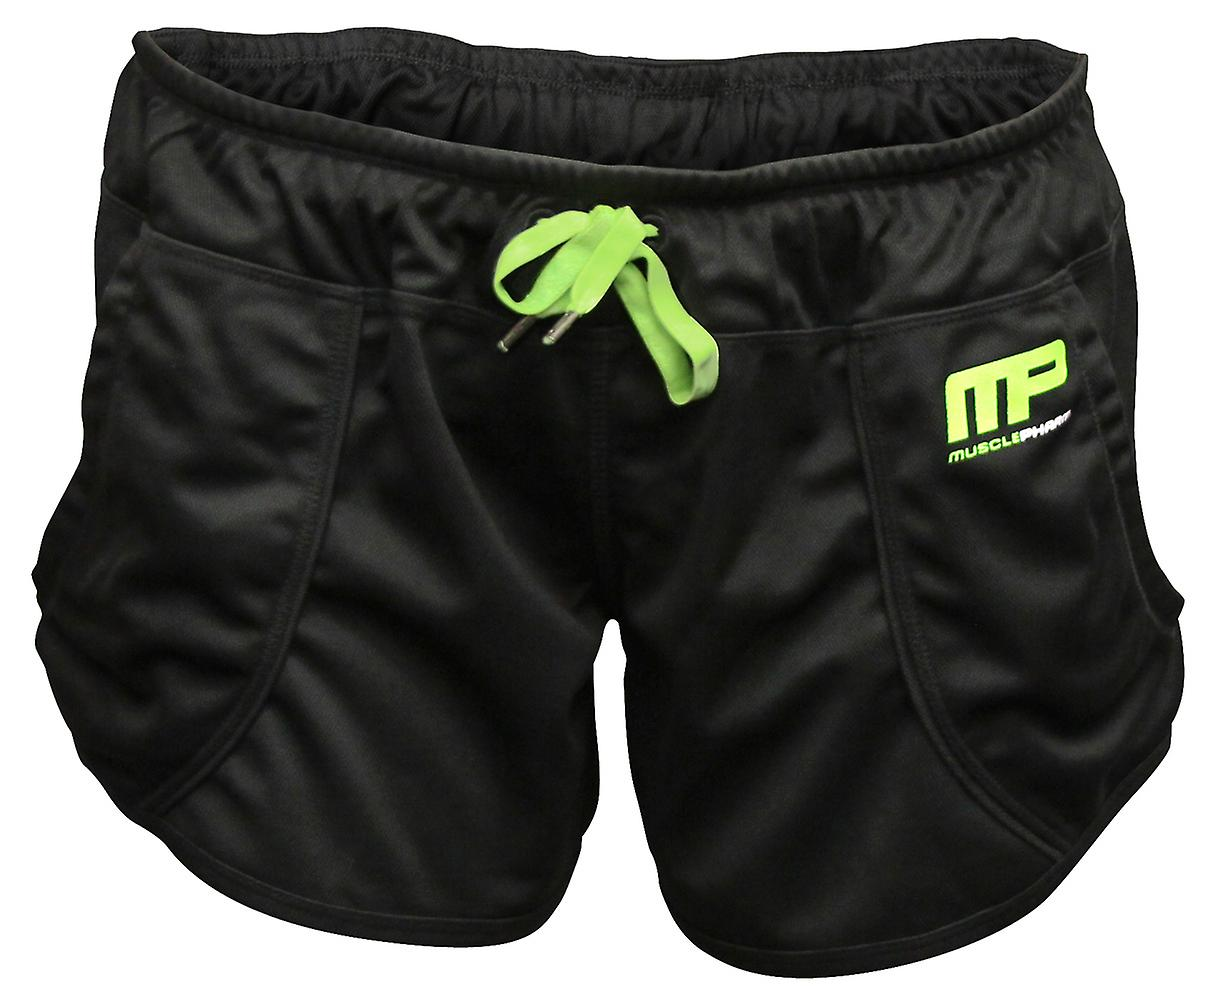 MusclePharm MP Womens Loose Fit Shorts Shorts - Black/Green